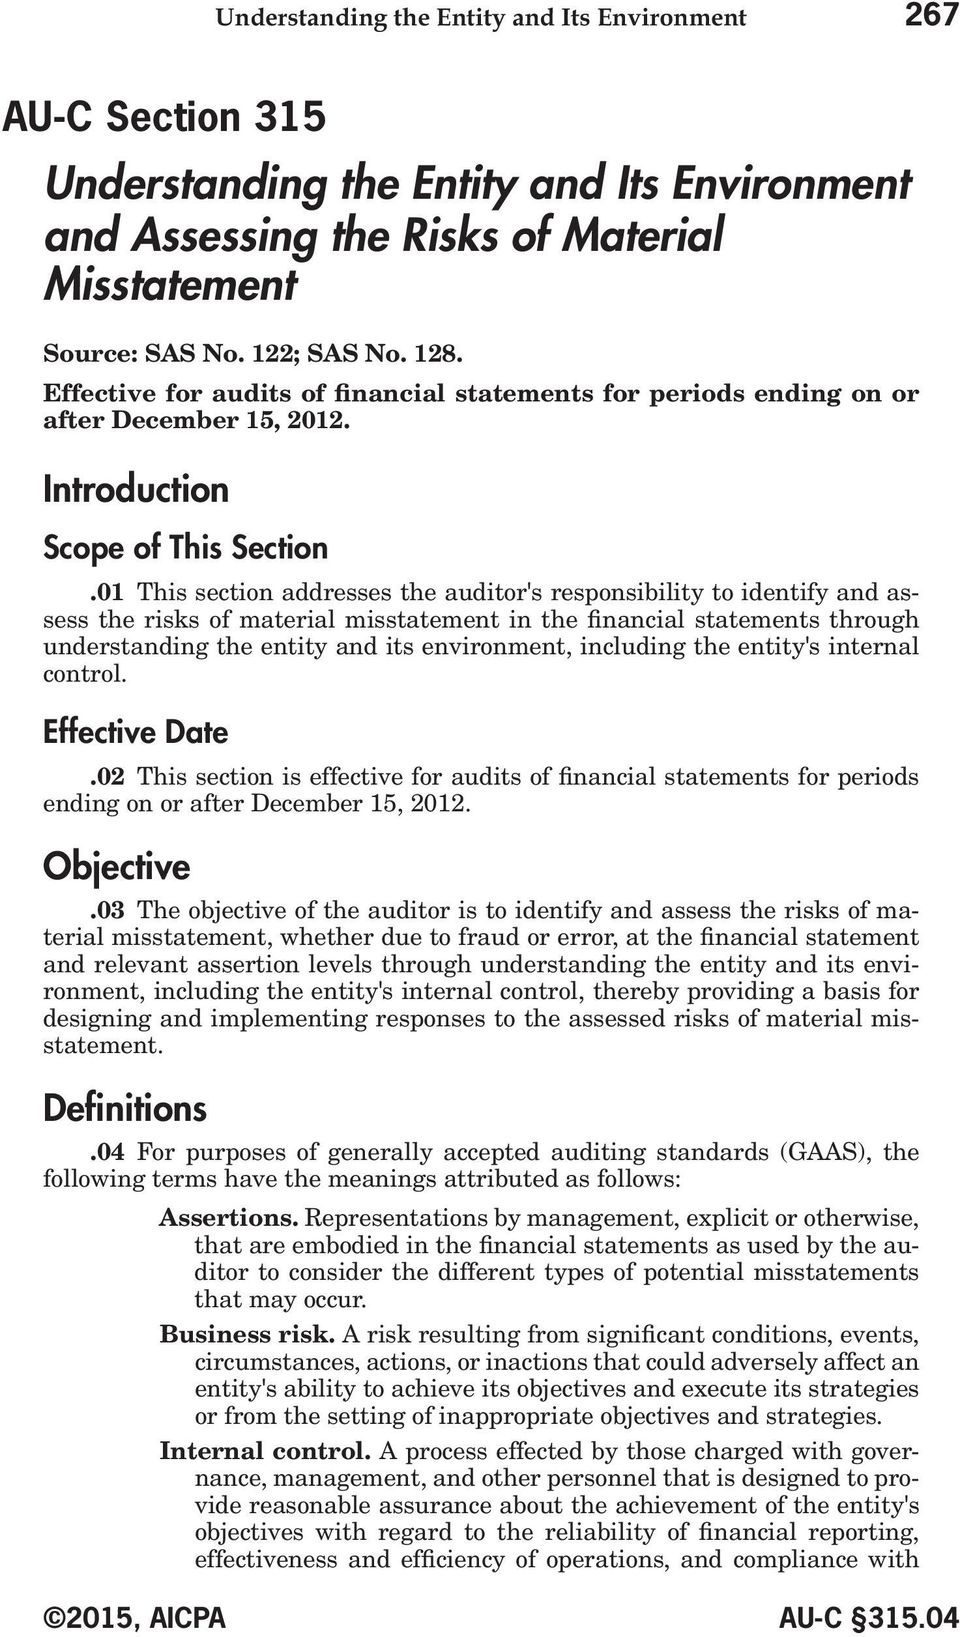 01 This section addresses the auditor's responsibility to identify and assess the risks of material misstatement in the financial statements through understanding the entity and its environment,